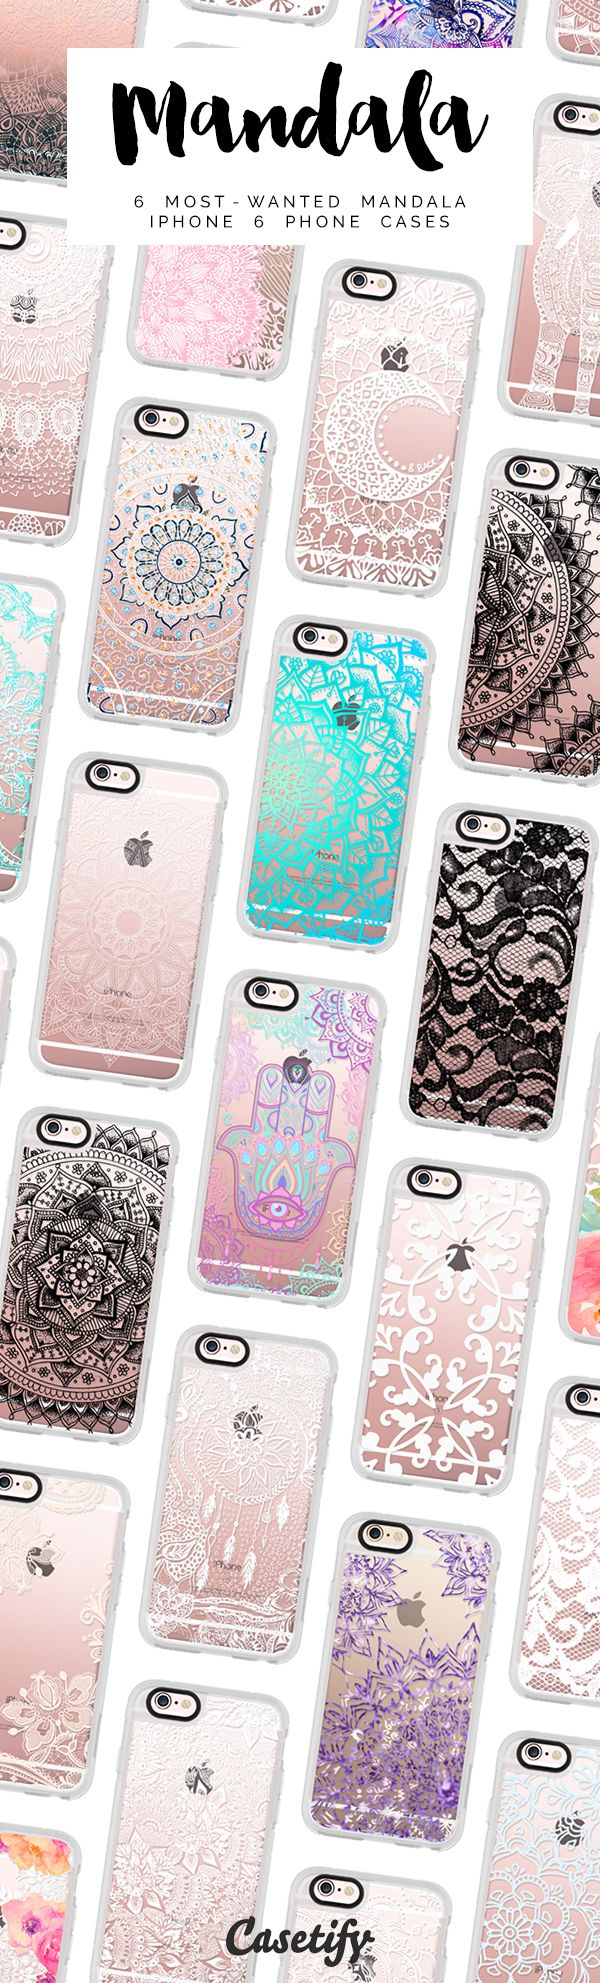 All time favourite mandala lace iPhone 6 protective phone cases | Click through to see more laceprint iphone case ideas >>> https://www.casetify.com/artworks/rvL5DerMBZ | @casetify